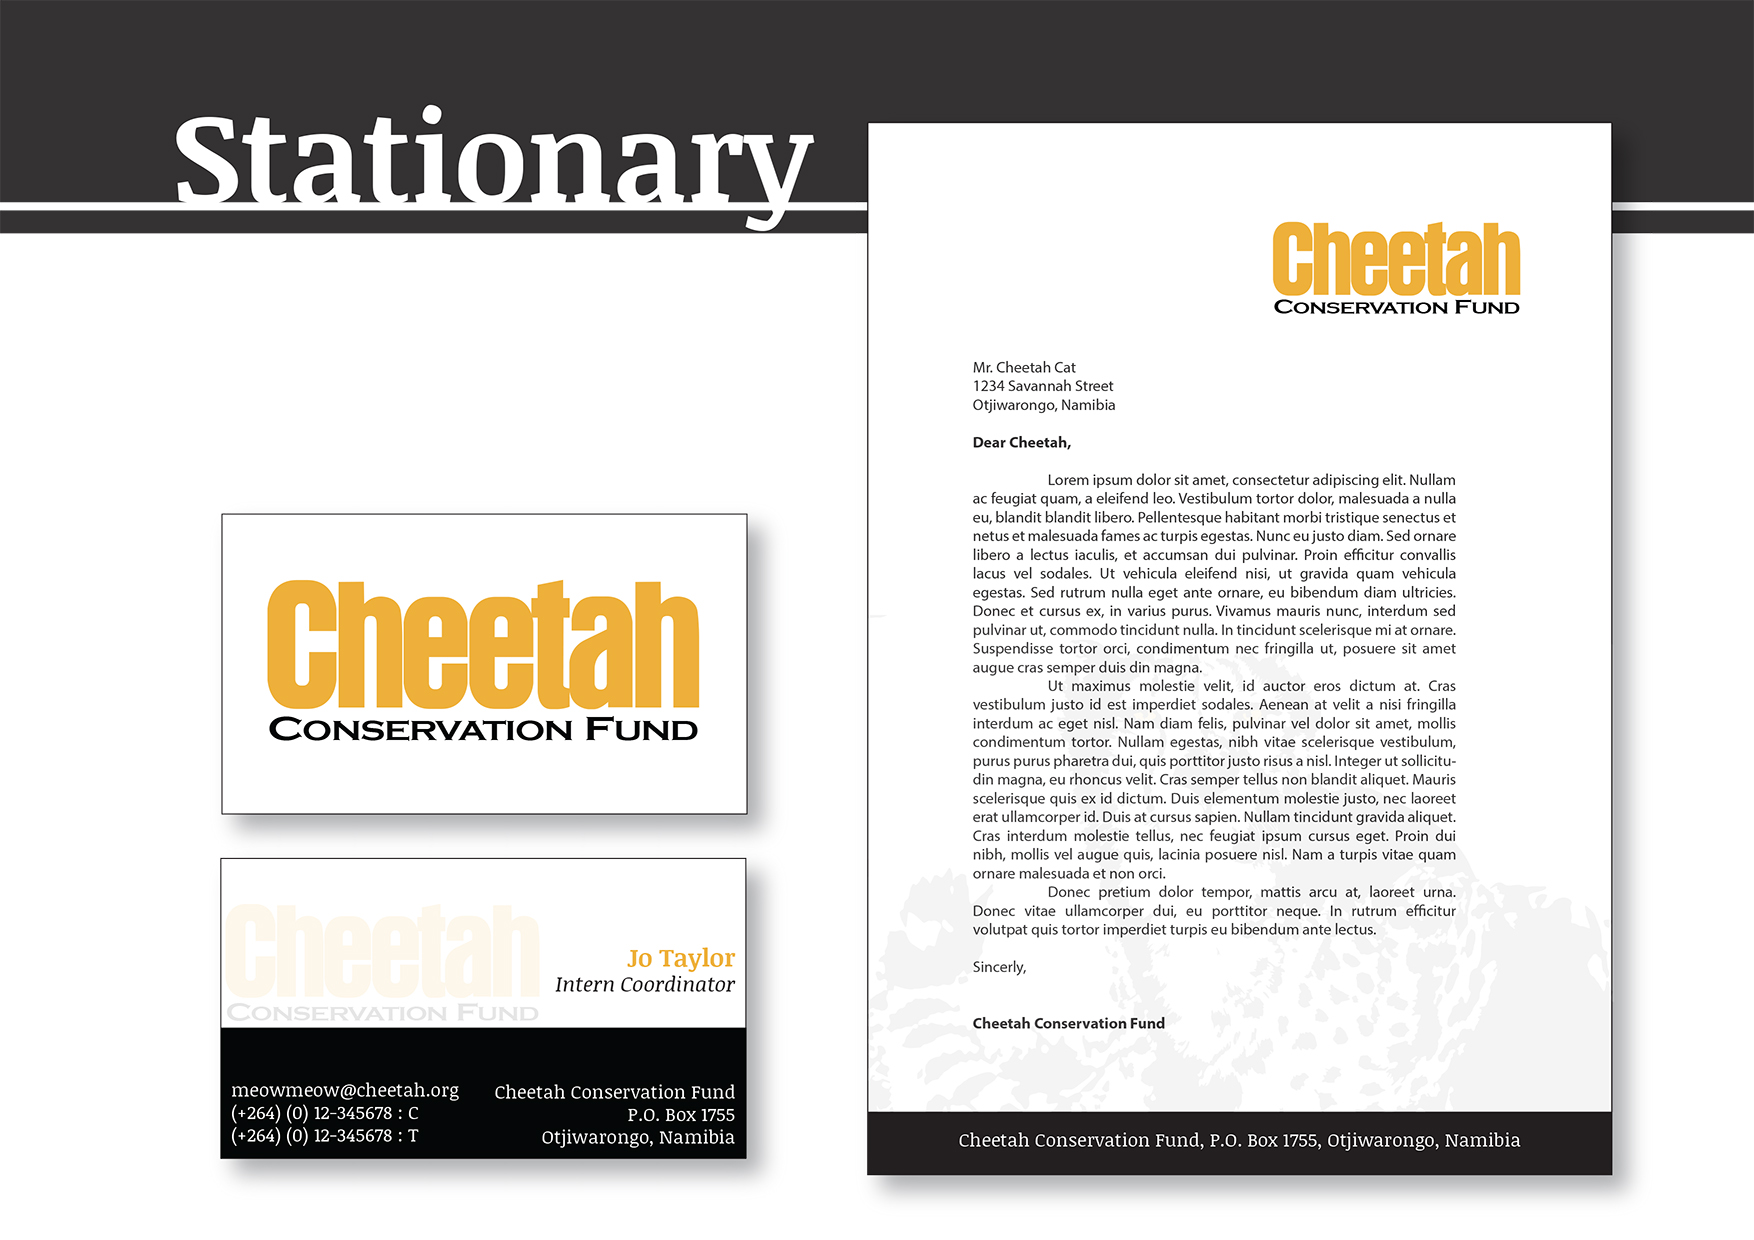 Cheetah Conservation Fund Brand Book (1)-9.jpg